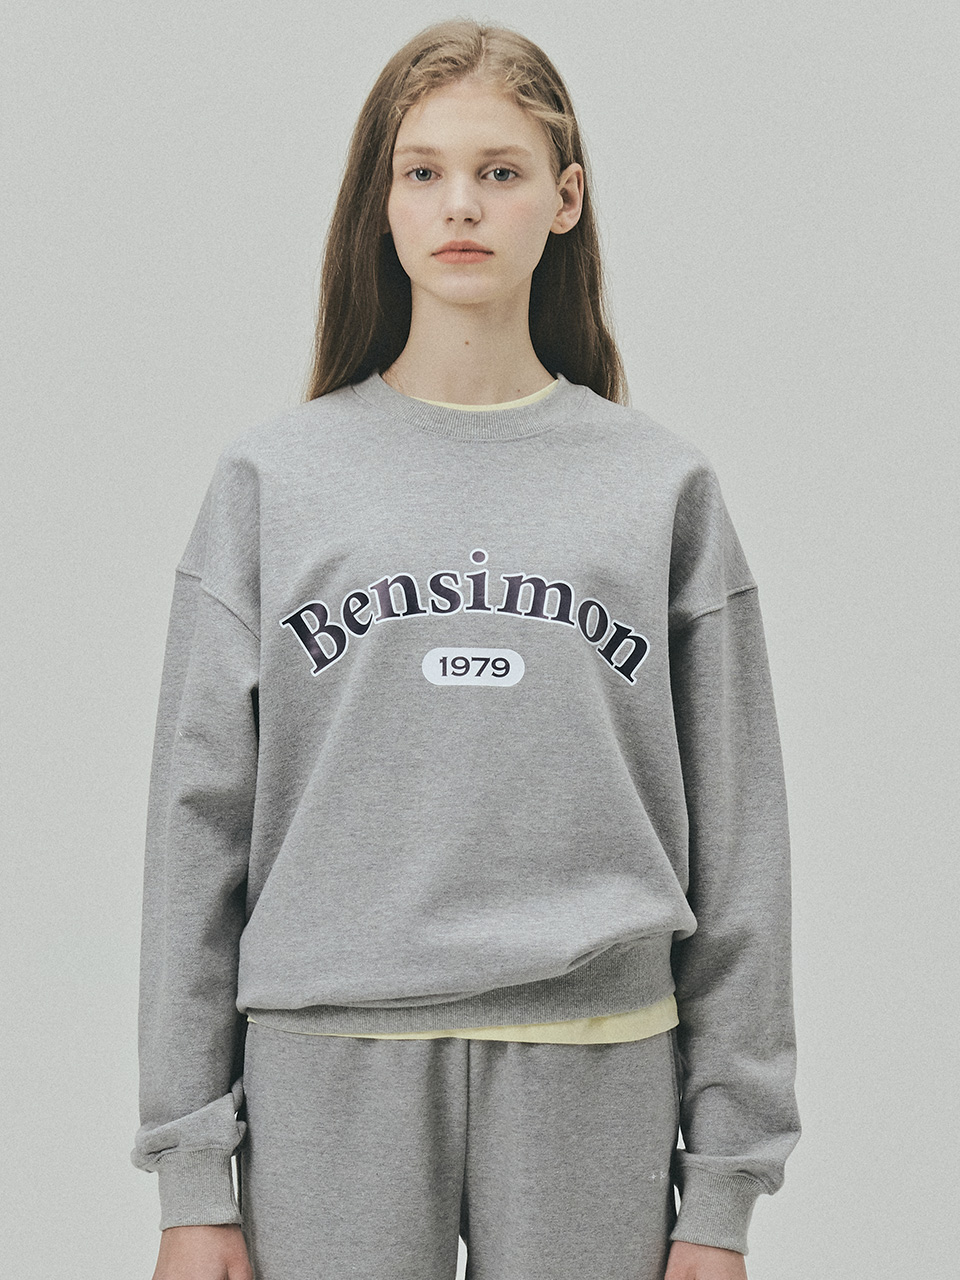 BENSIMON 1979 HERITAGE SWEAT SHIRT - GREY